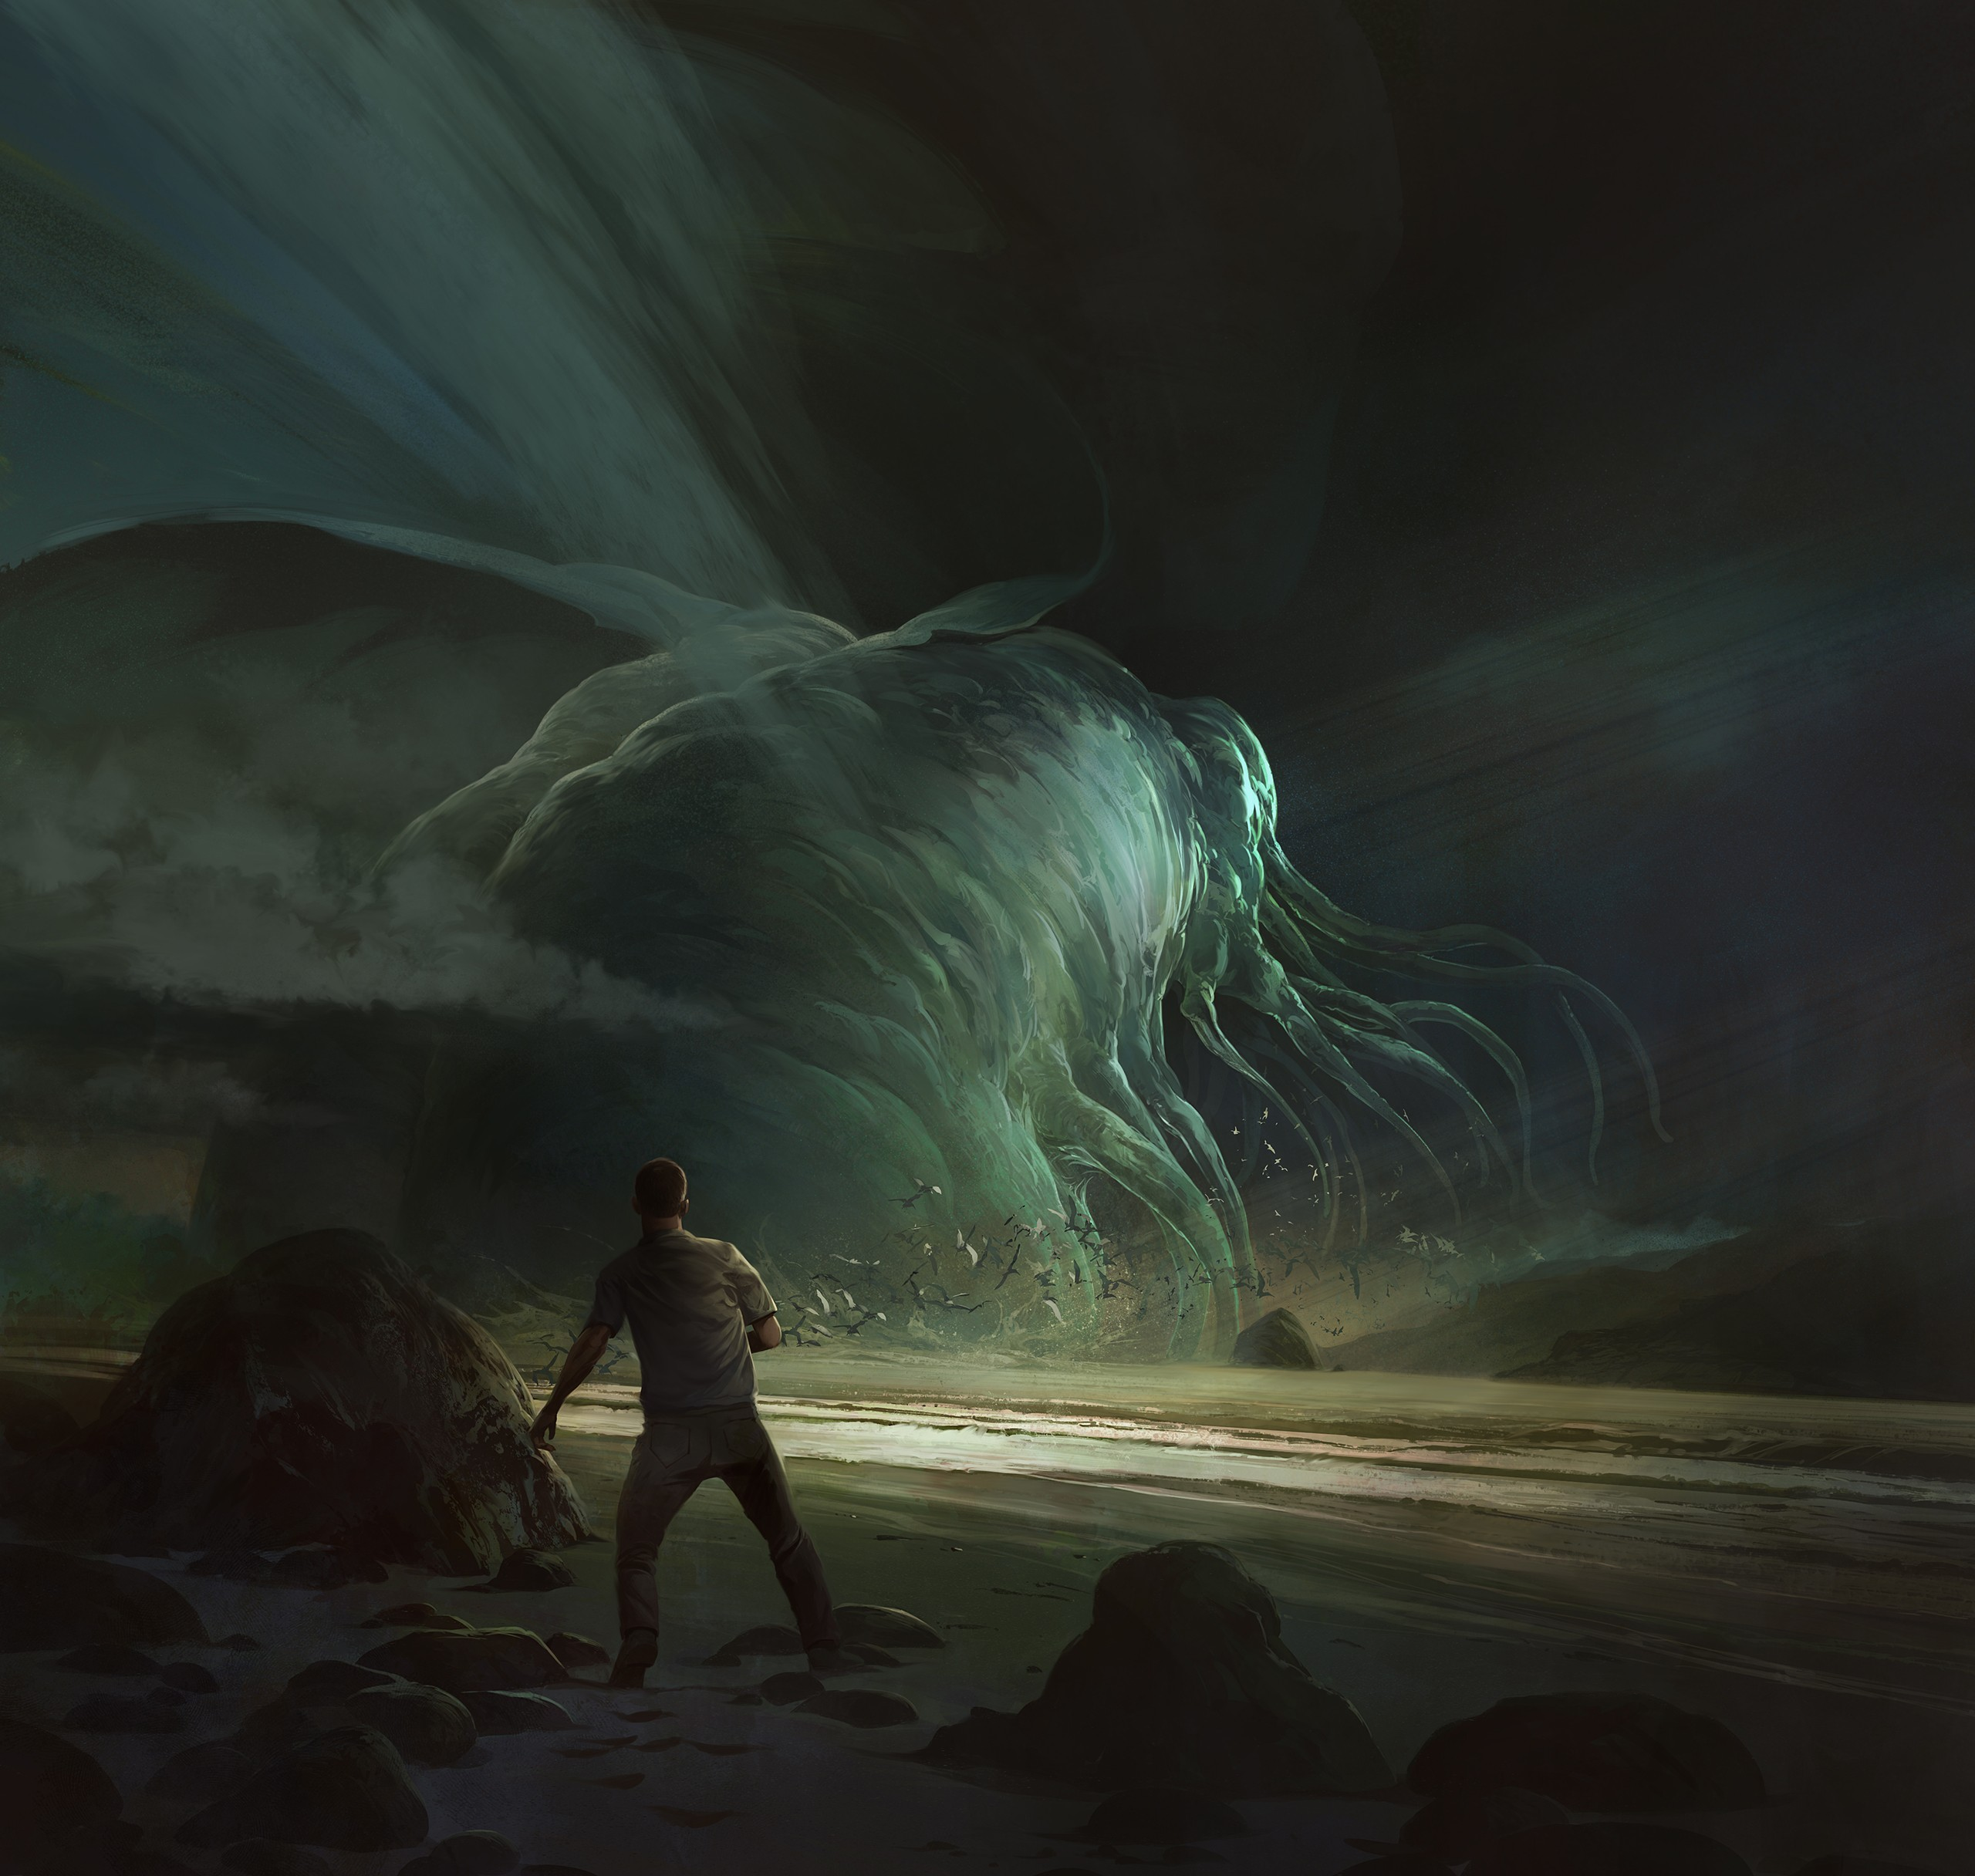 Art Macabre: From the Deep, by Christian Bravery